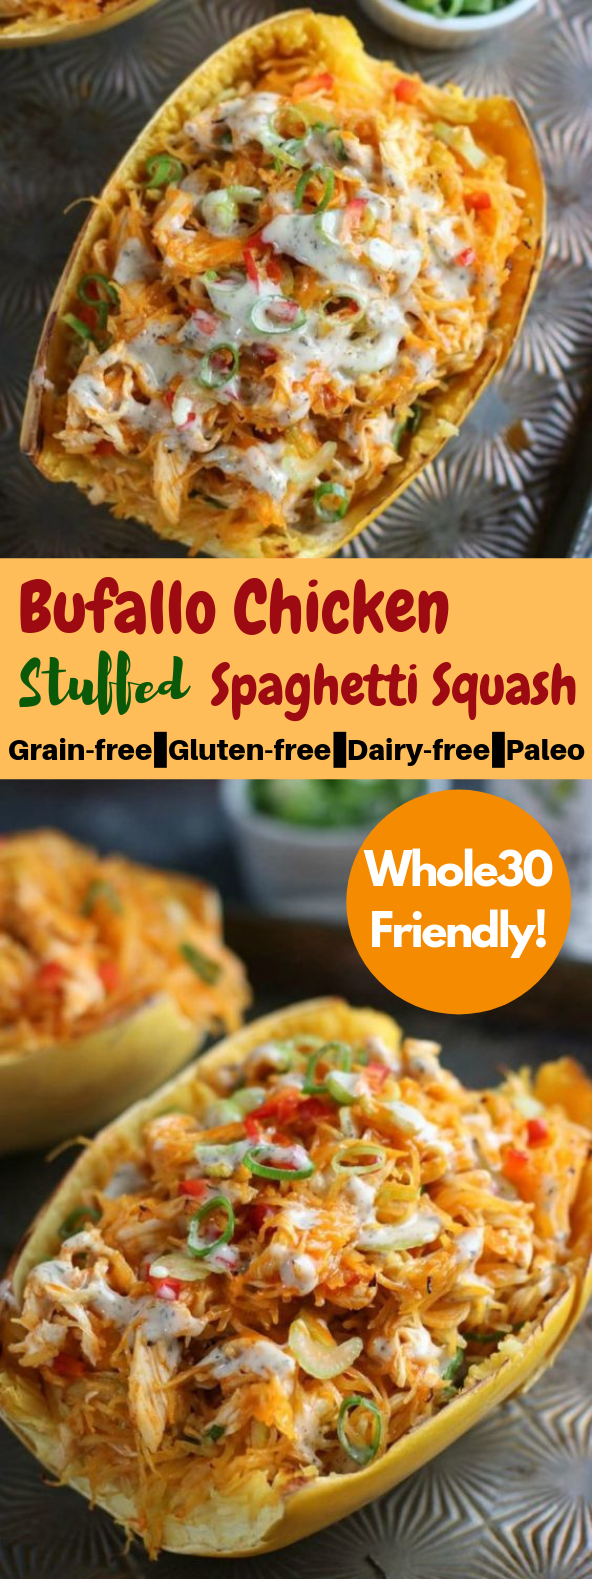 Buffalo Chicken Stuffed Spaghetti Squash #Chicken #HealthyRecipe